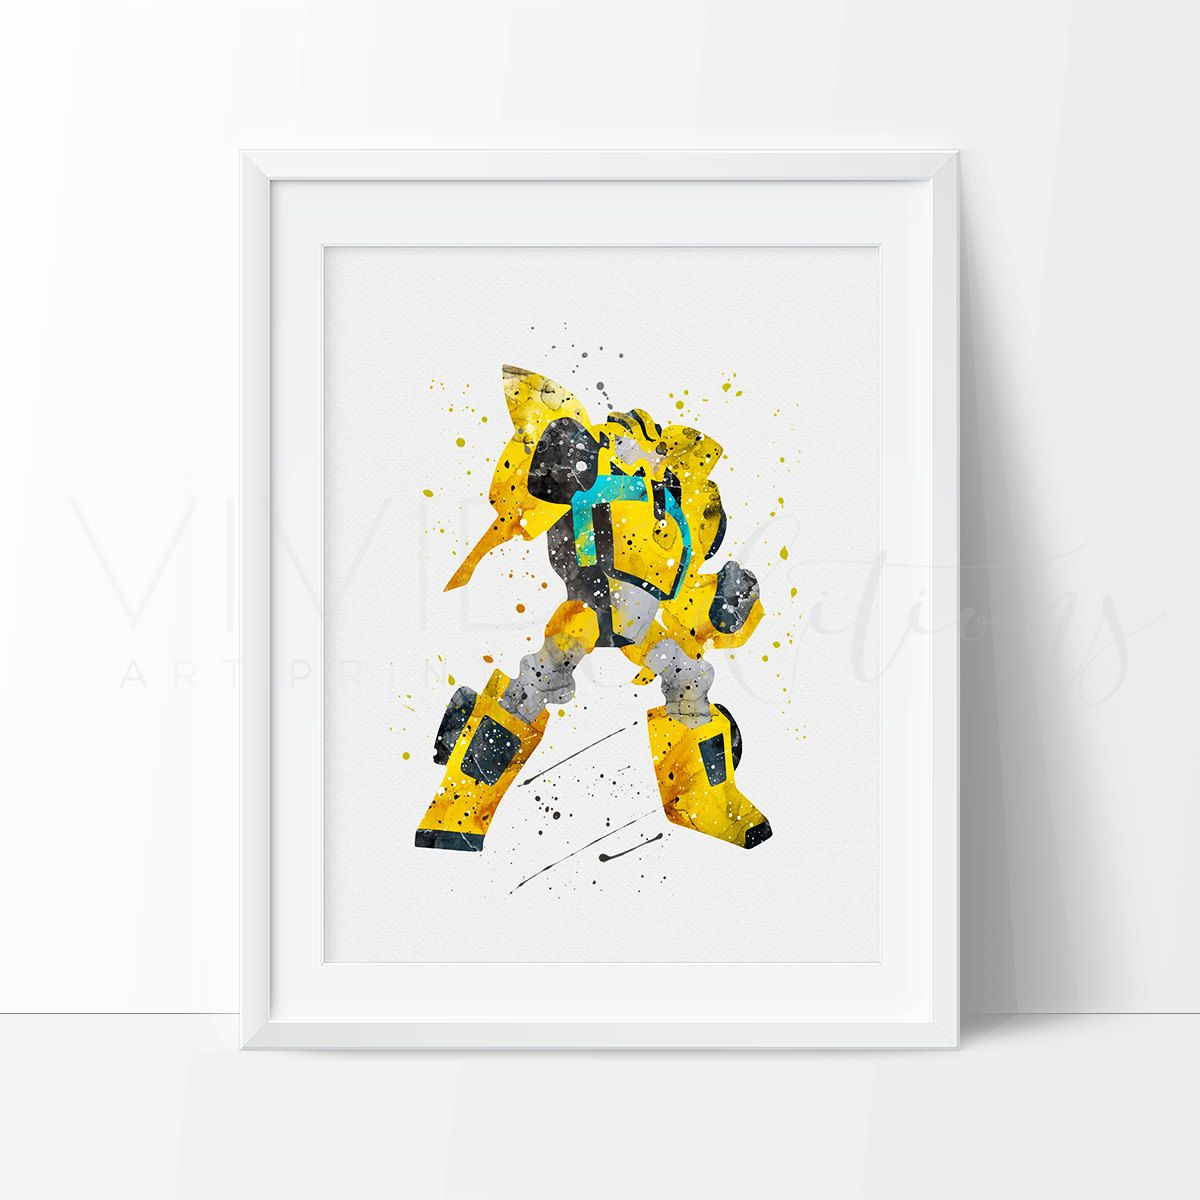 Transformers Bumblebee Art Print, Superhero Watercolor Nursery Art Decor, Boys Bedroom Wall Decor, Superhero Art Print, Not Framed, No. 36 • • • • • • • • • • • • • • • • • • • • • • • • • • • • • • • • • • • • • • • • • • • ★ FREE PRIORITY MAIL SHIPPING on all US orders over $50 ★ ▷ ▷ ▷ Enter Code: PRIORITYSHIP ★ FREE FIRST-CLASS MAIL SHIPPING on International orders over $100 ★ ▷ ▷ ▷ Enter Code: FREESHIP100 *Coupon must be entered upon checkout. We are unable to give credit after…